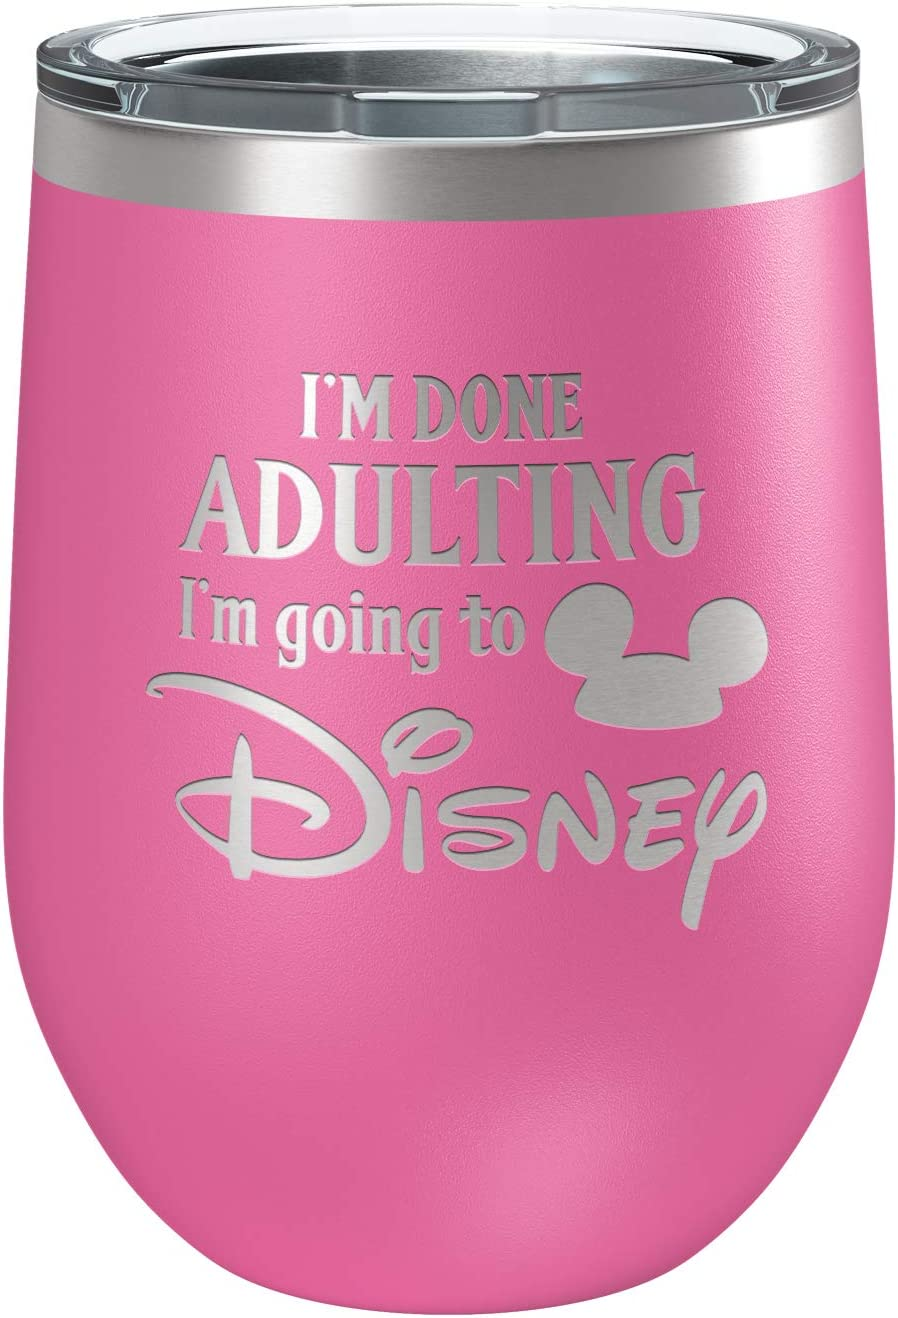 Funny Disney-Inspired Stainless Steel Wine Tumbler with Lid | Vacuum Insulated Mug | Mickey Mouse | Birthday | Housewarming Gift | By Laser Etchpressions | Im Done Adulting Im Going to Disney Pink